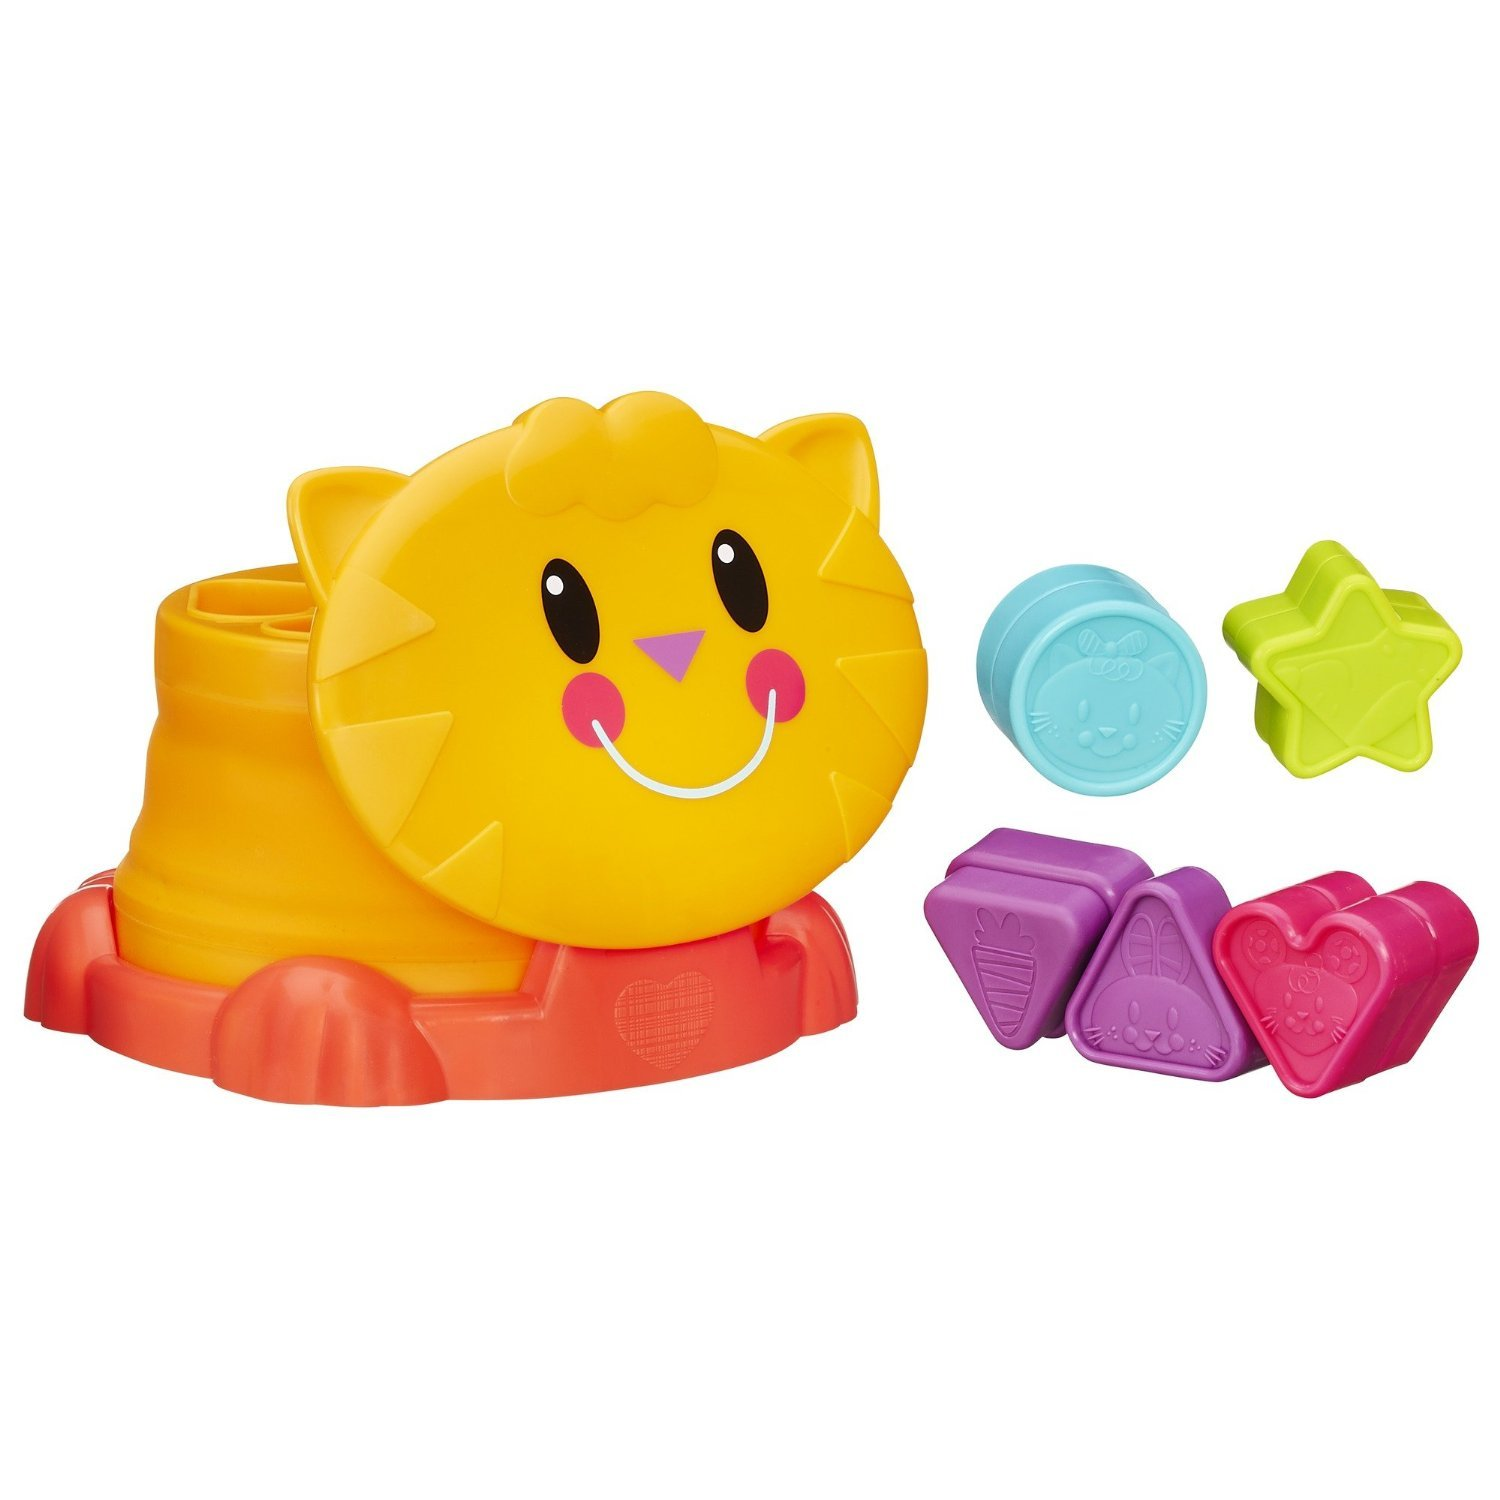 Playskool Pop Up Shape Sorter Toy At Mighty Ape Nz